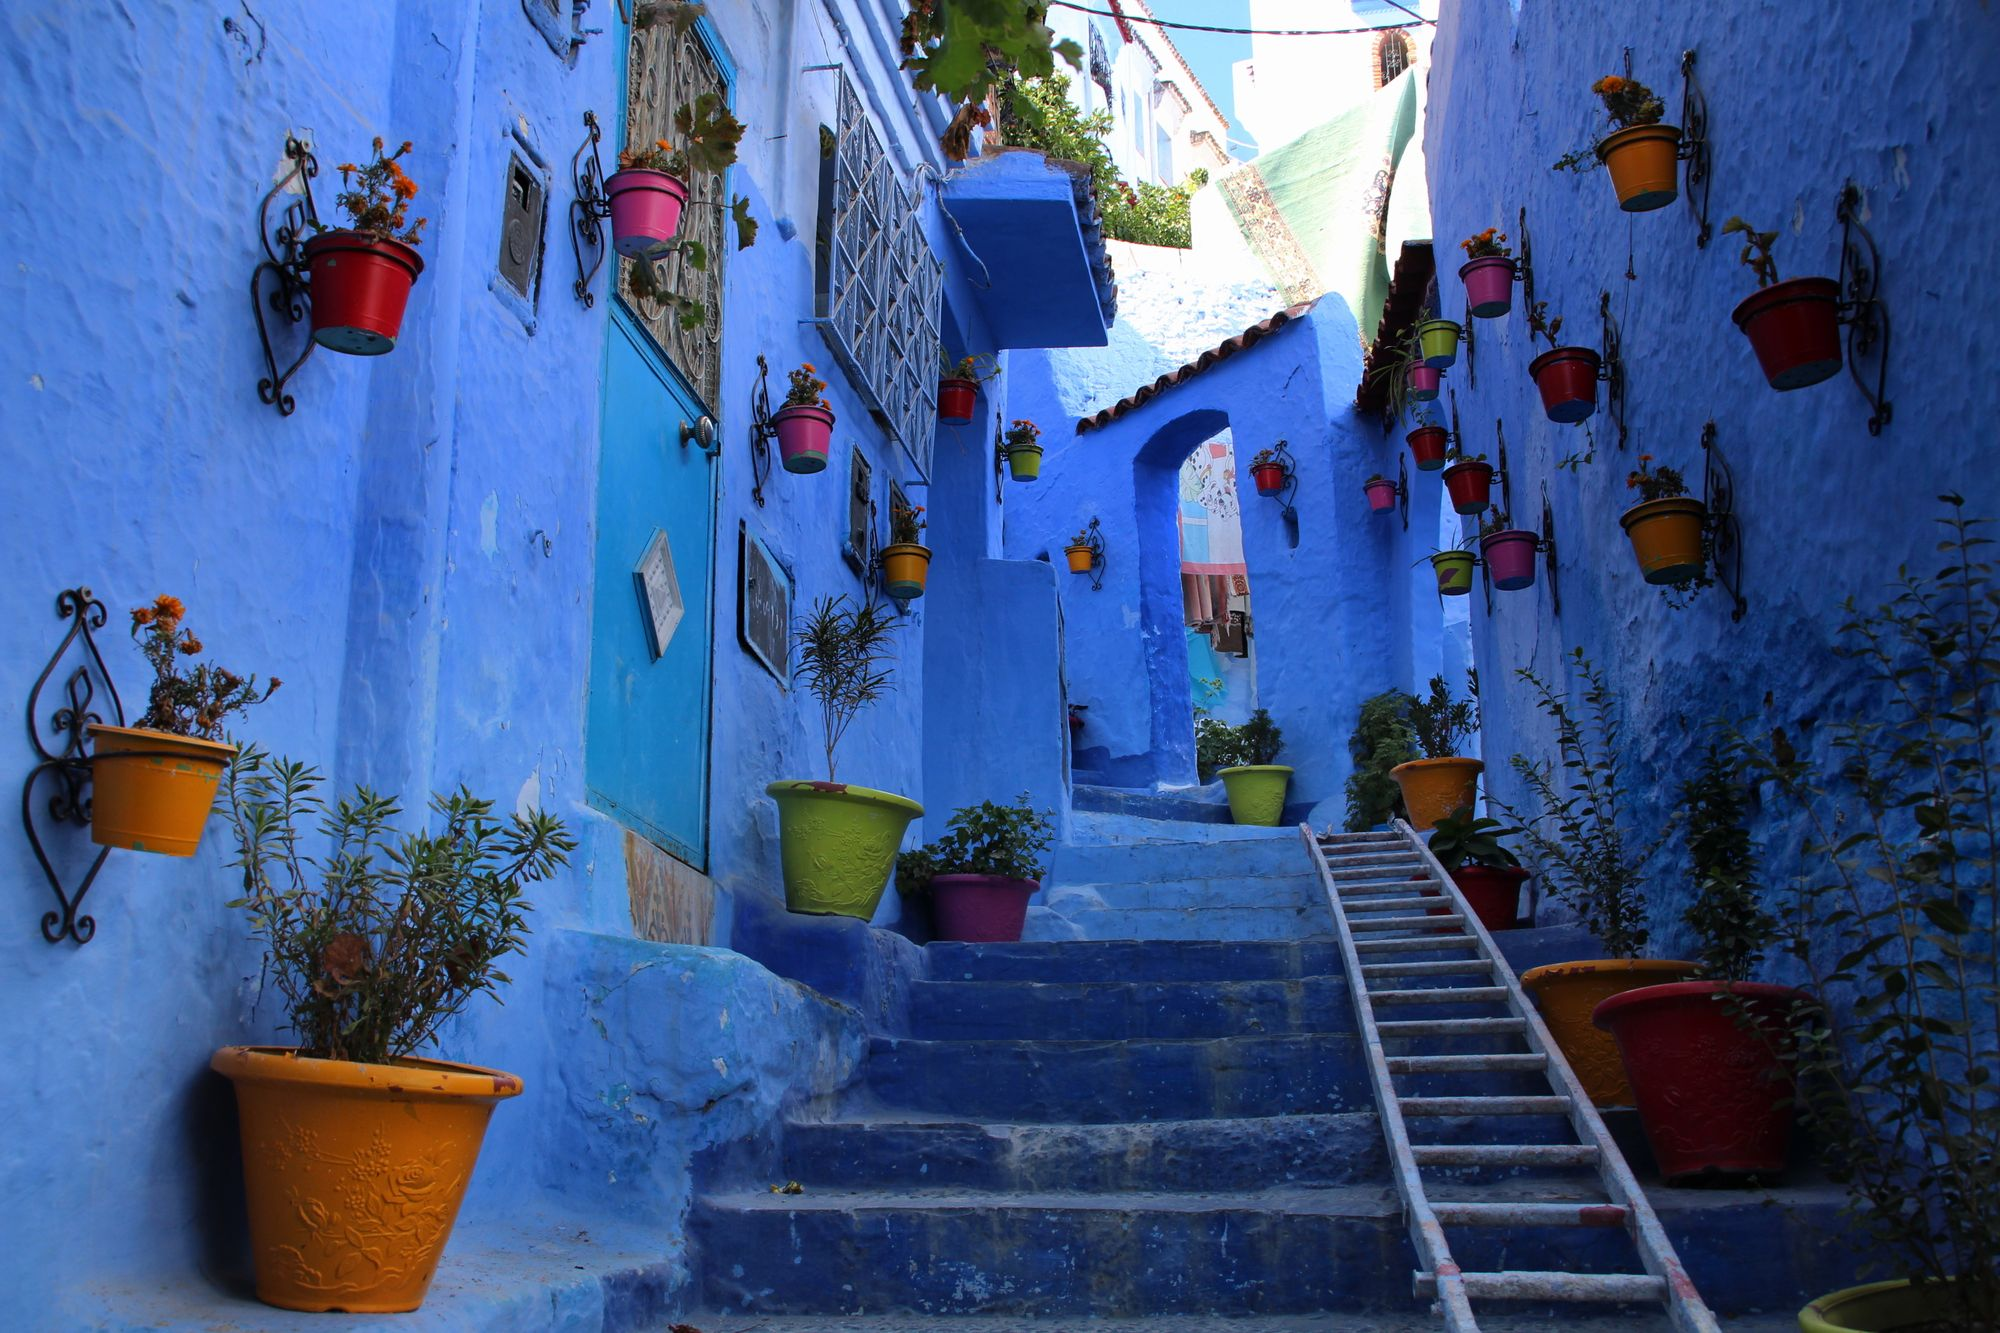 The Ultimate Guide To The Mysterious Blue Town Of Chefchaouen, Morocco